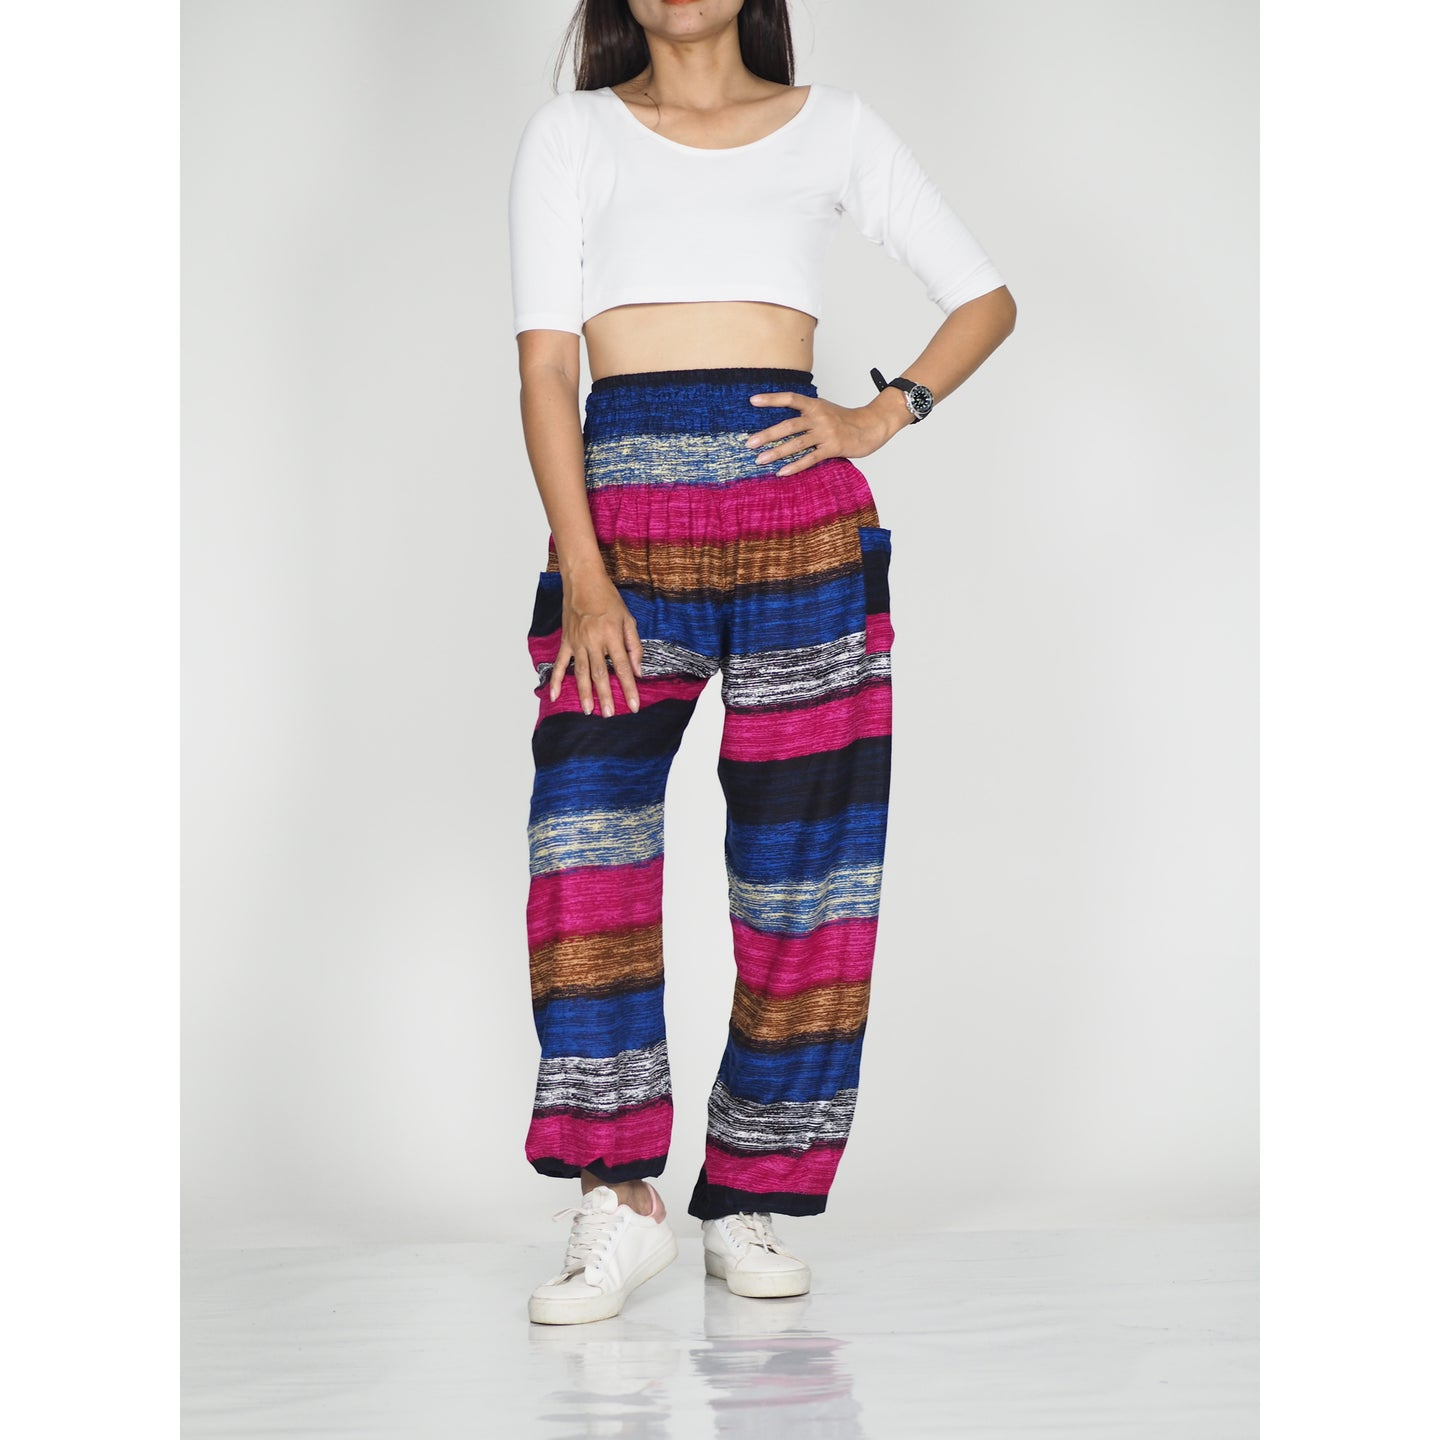 Funny Stripe 21 women harem pants in Black PP0004 020021 01